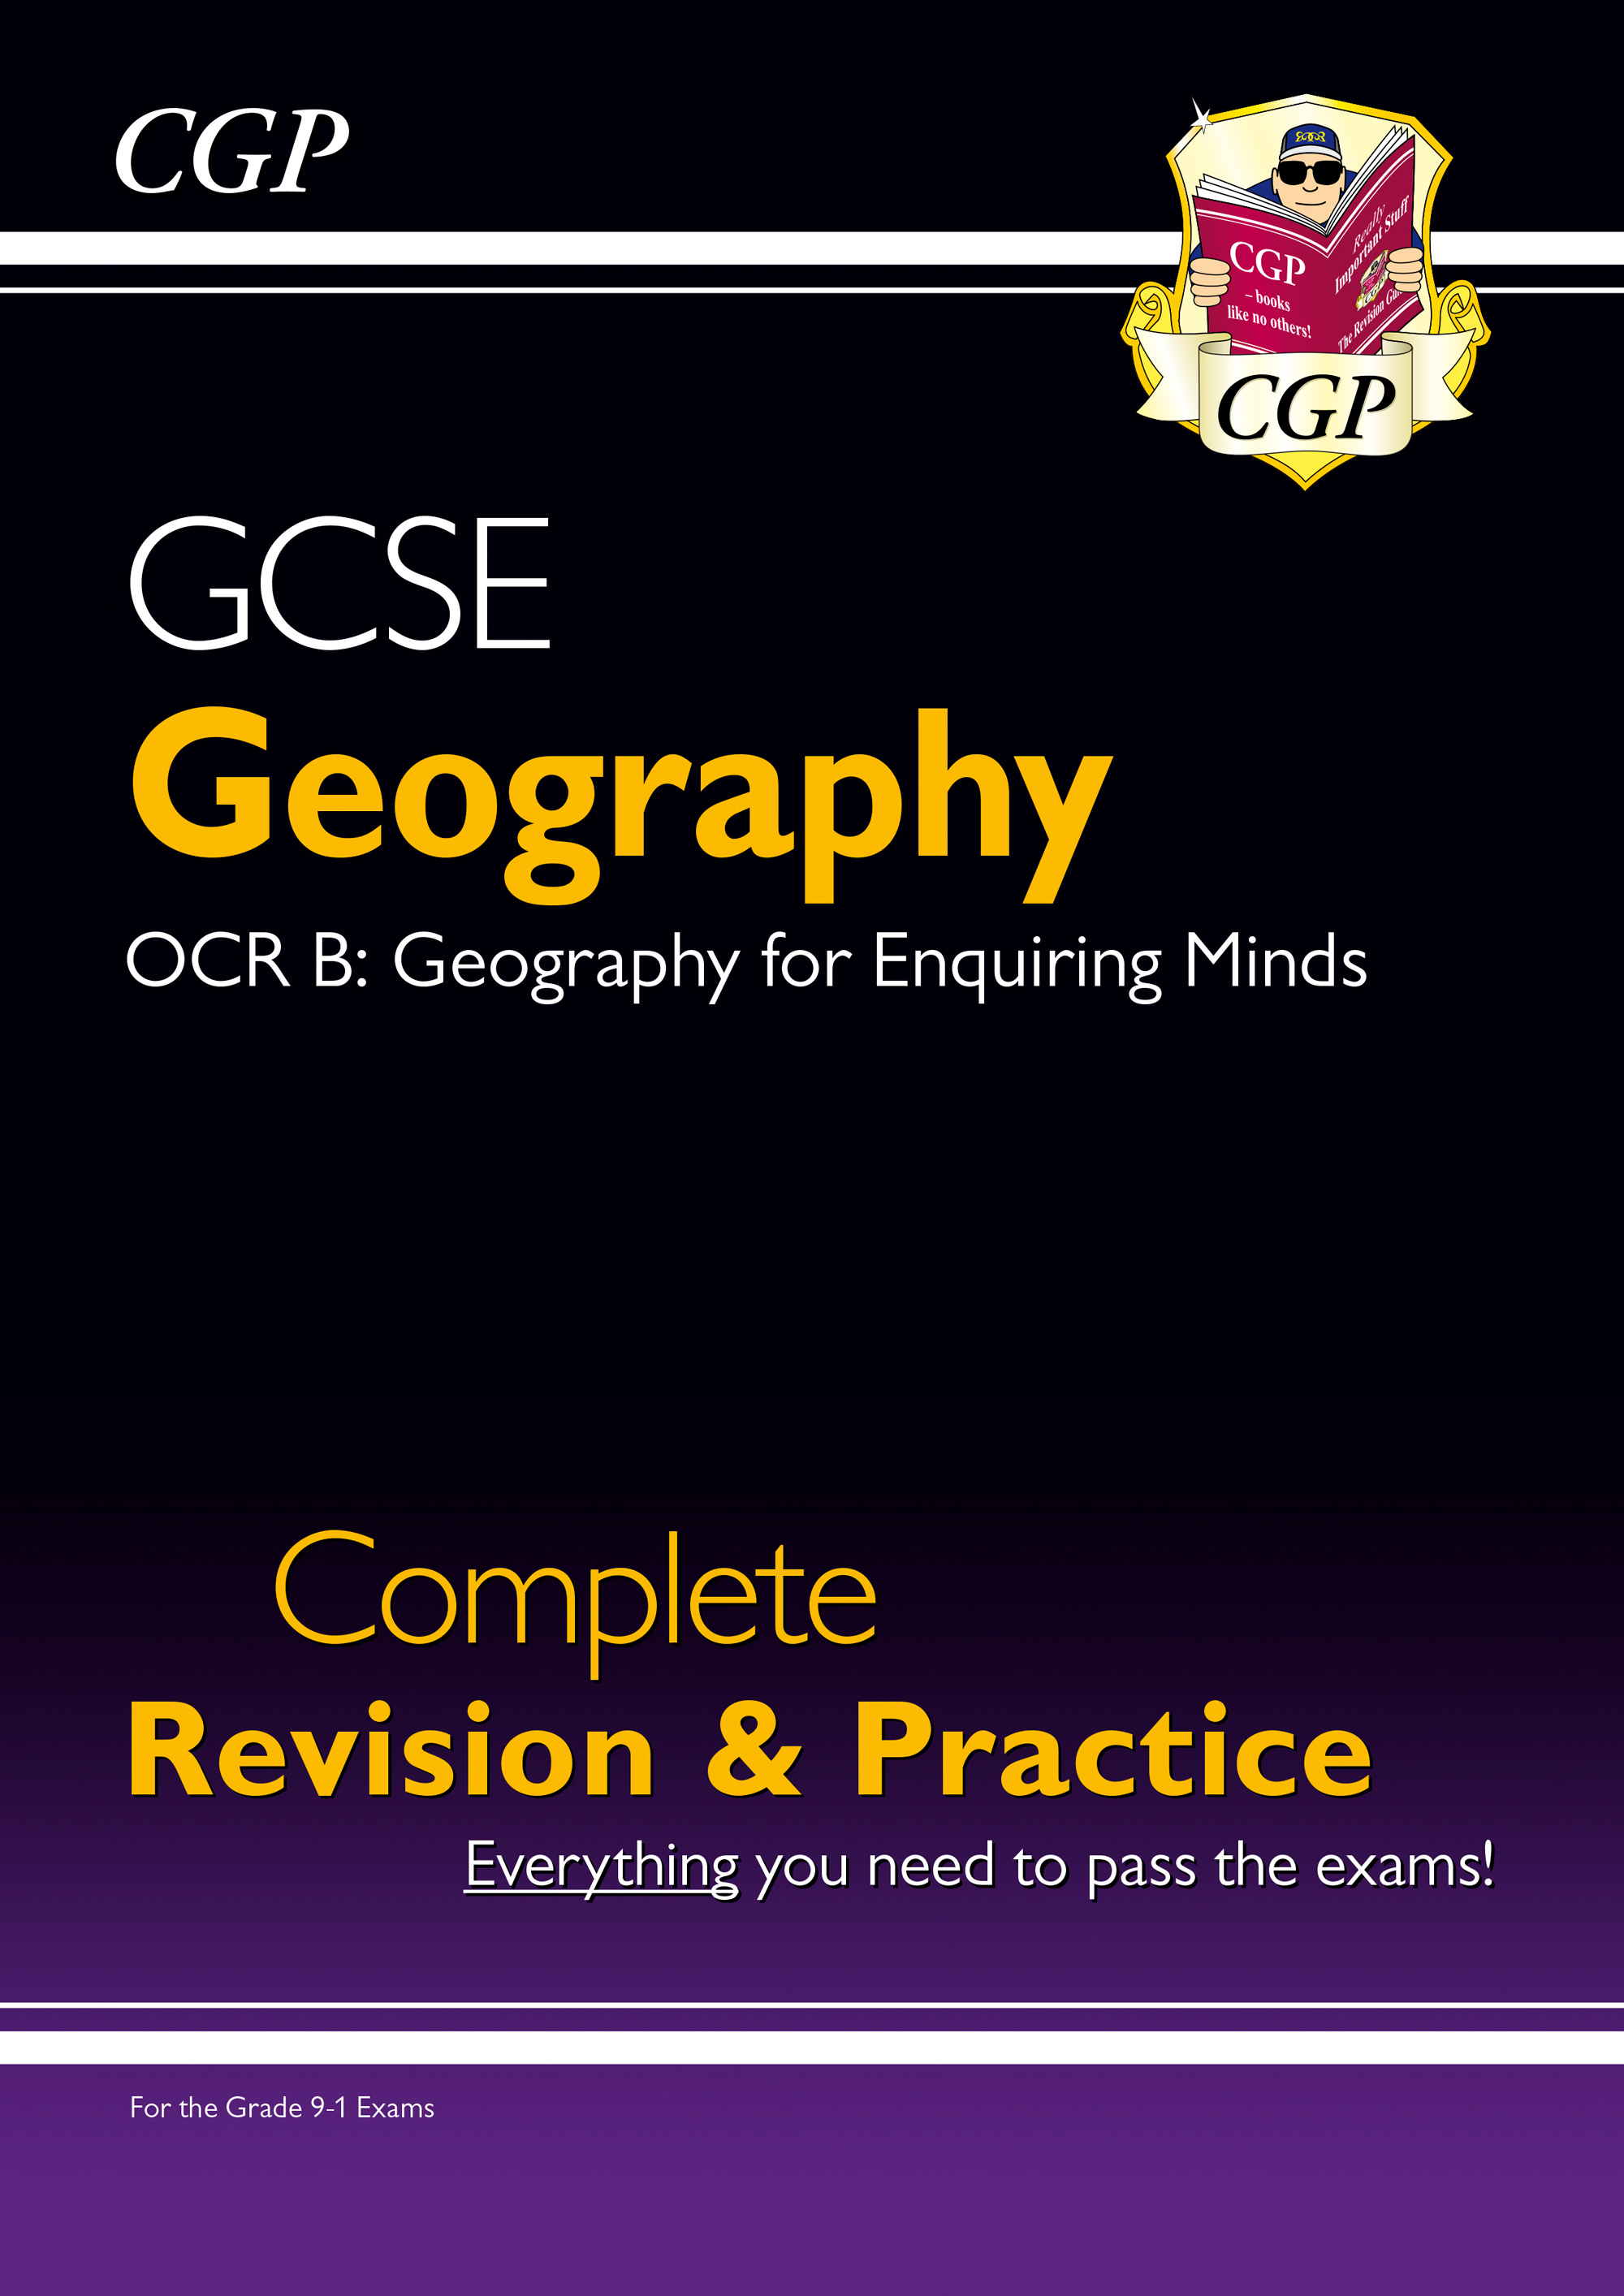 GRS41DK - New Grade 9-1 GCSE Geography OCR B Complete Revision & Practice